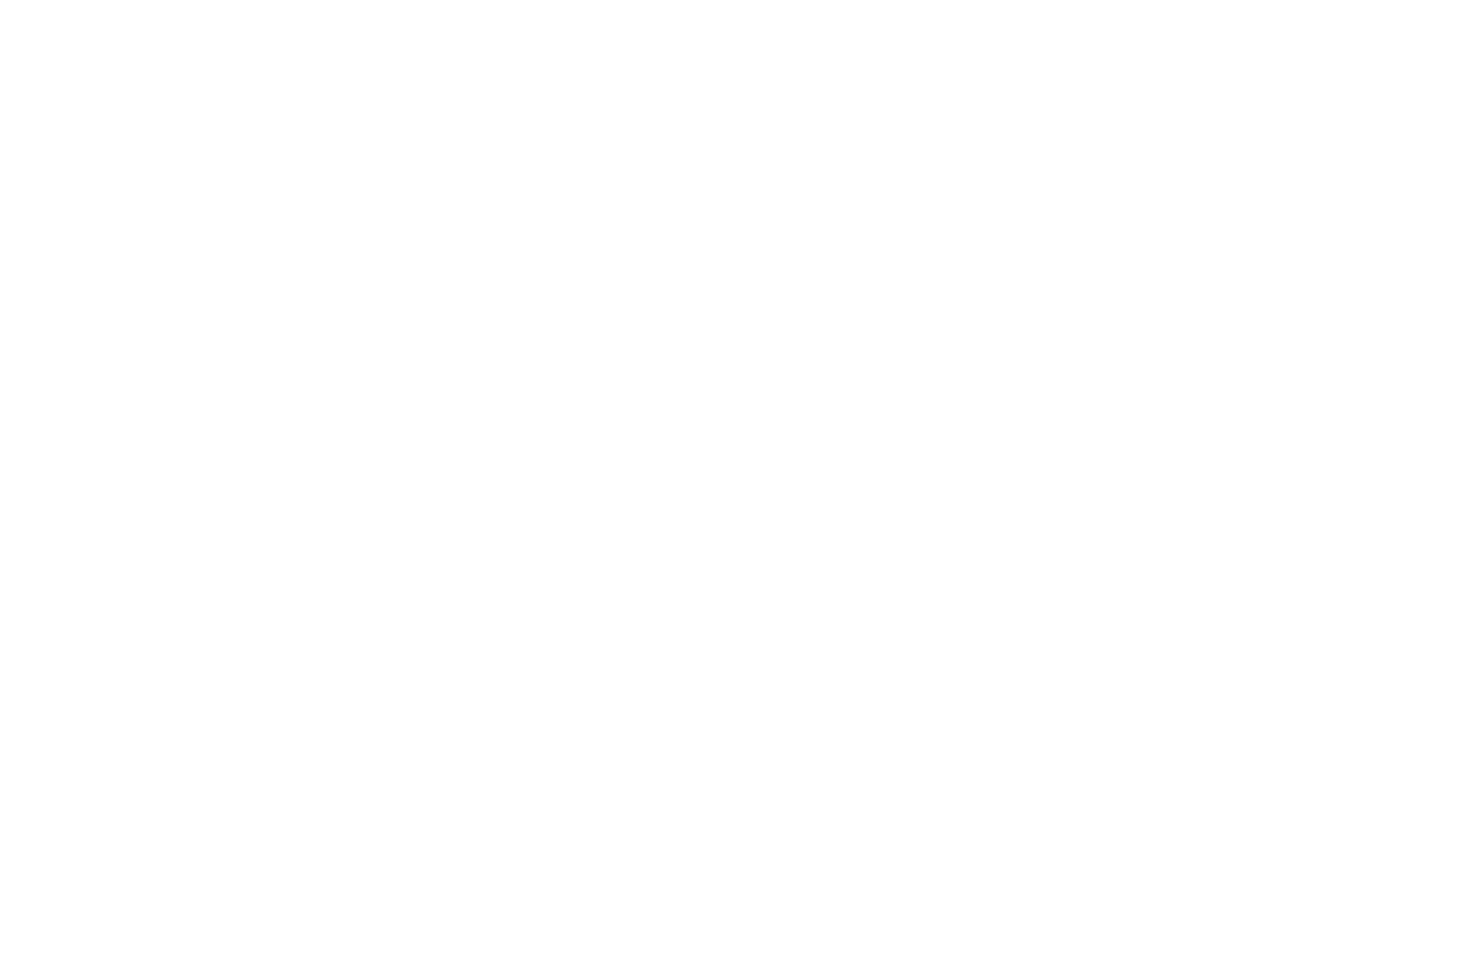 The Nomadic Collector